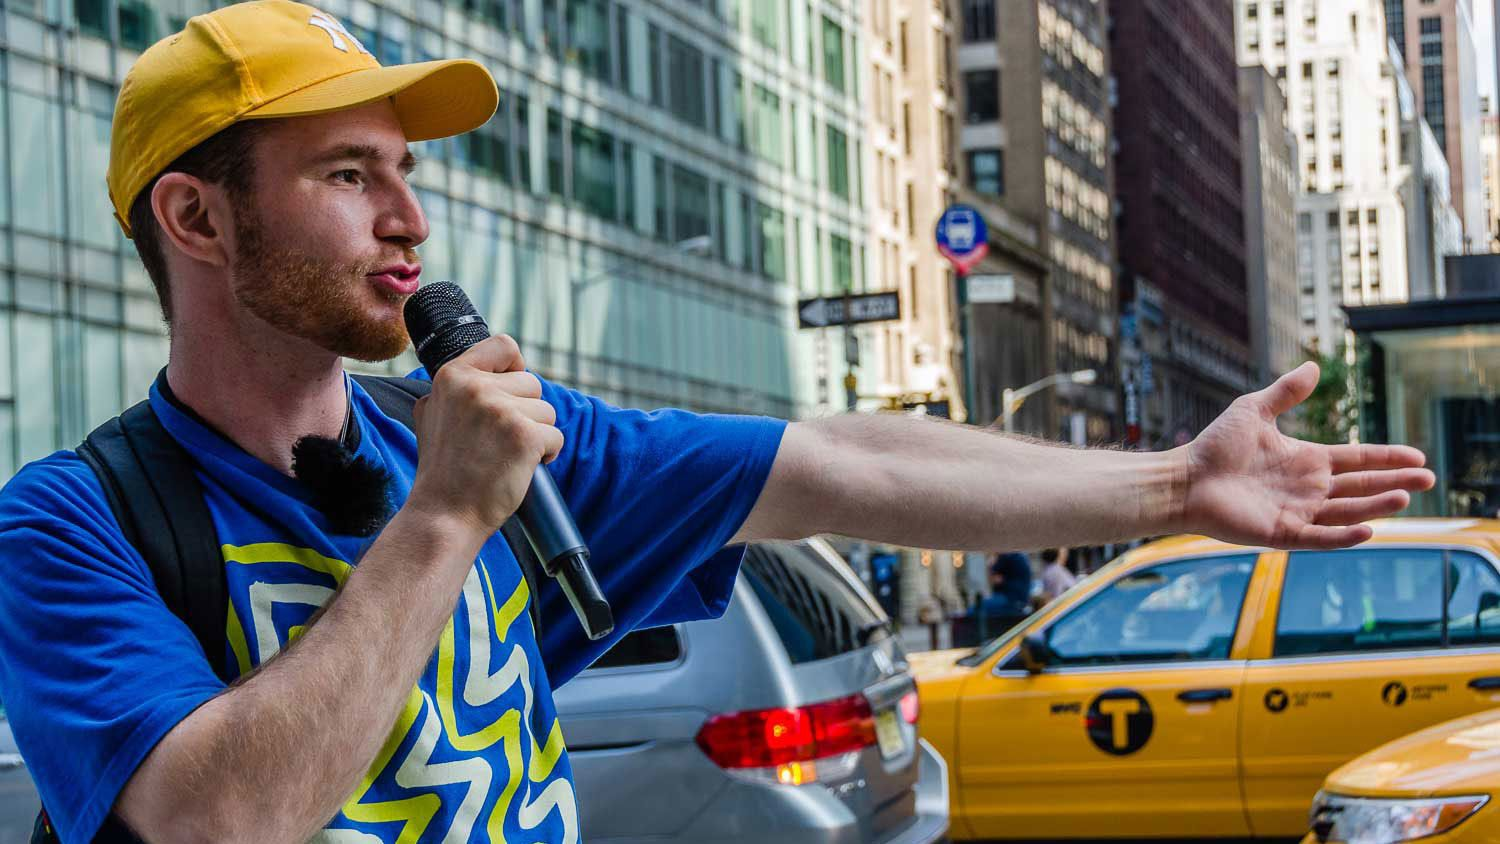 Tour guide with microphone in New York